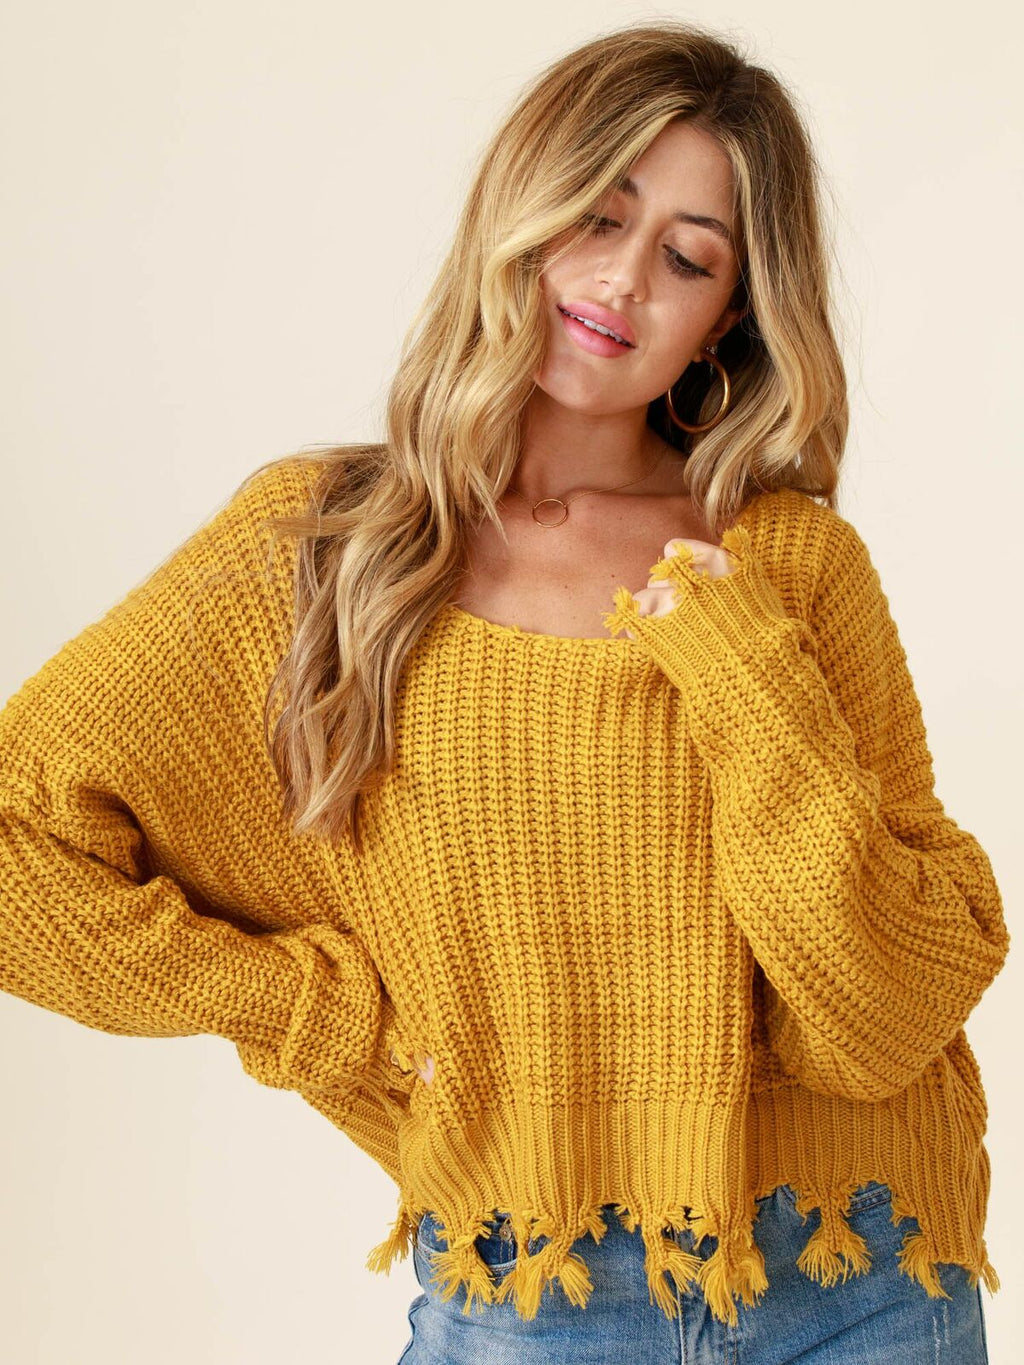 Taste of Honey Sweater